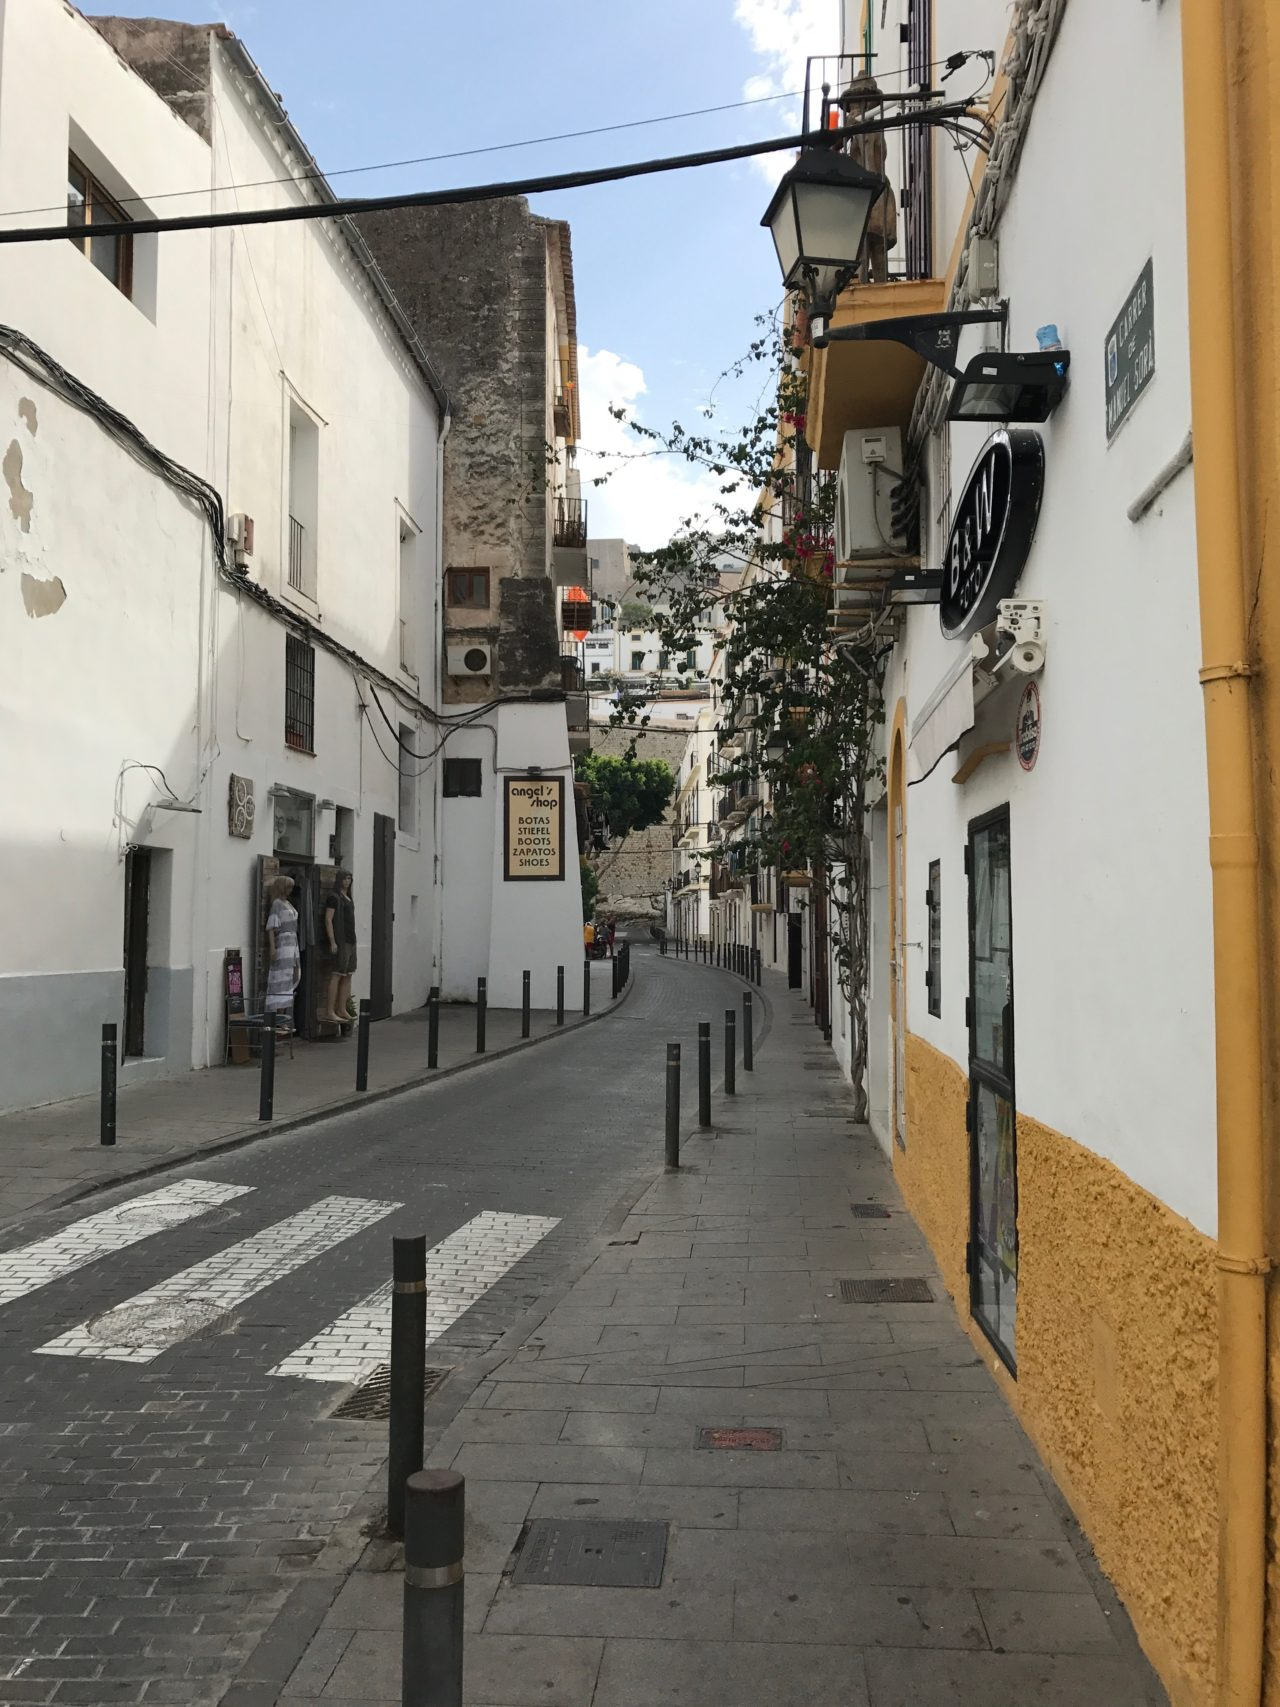 Narrow Alley Street With A Small Shop And Pedestrian Crossing